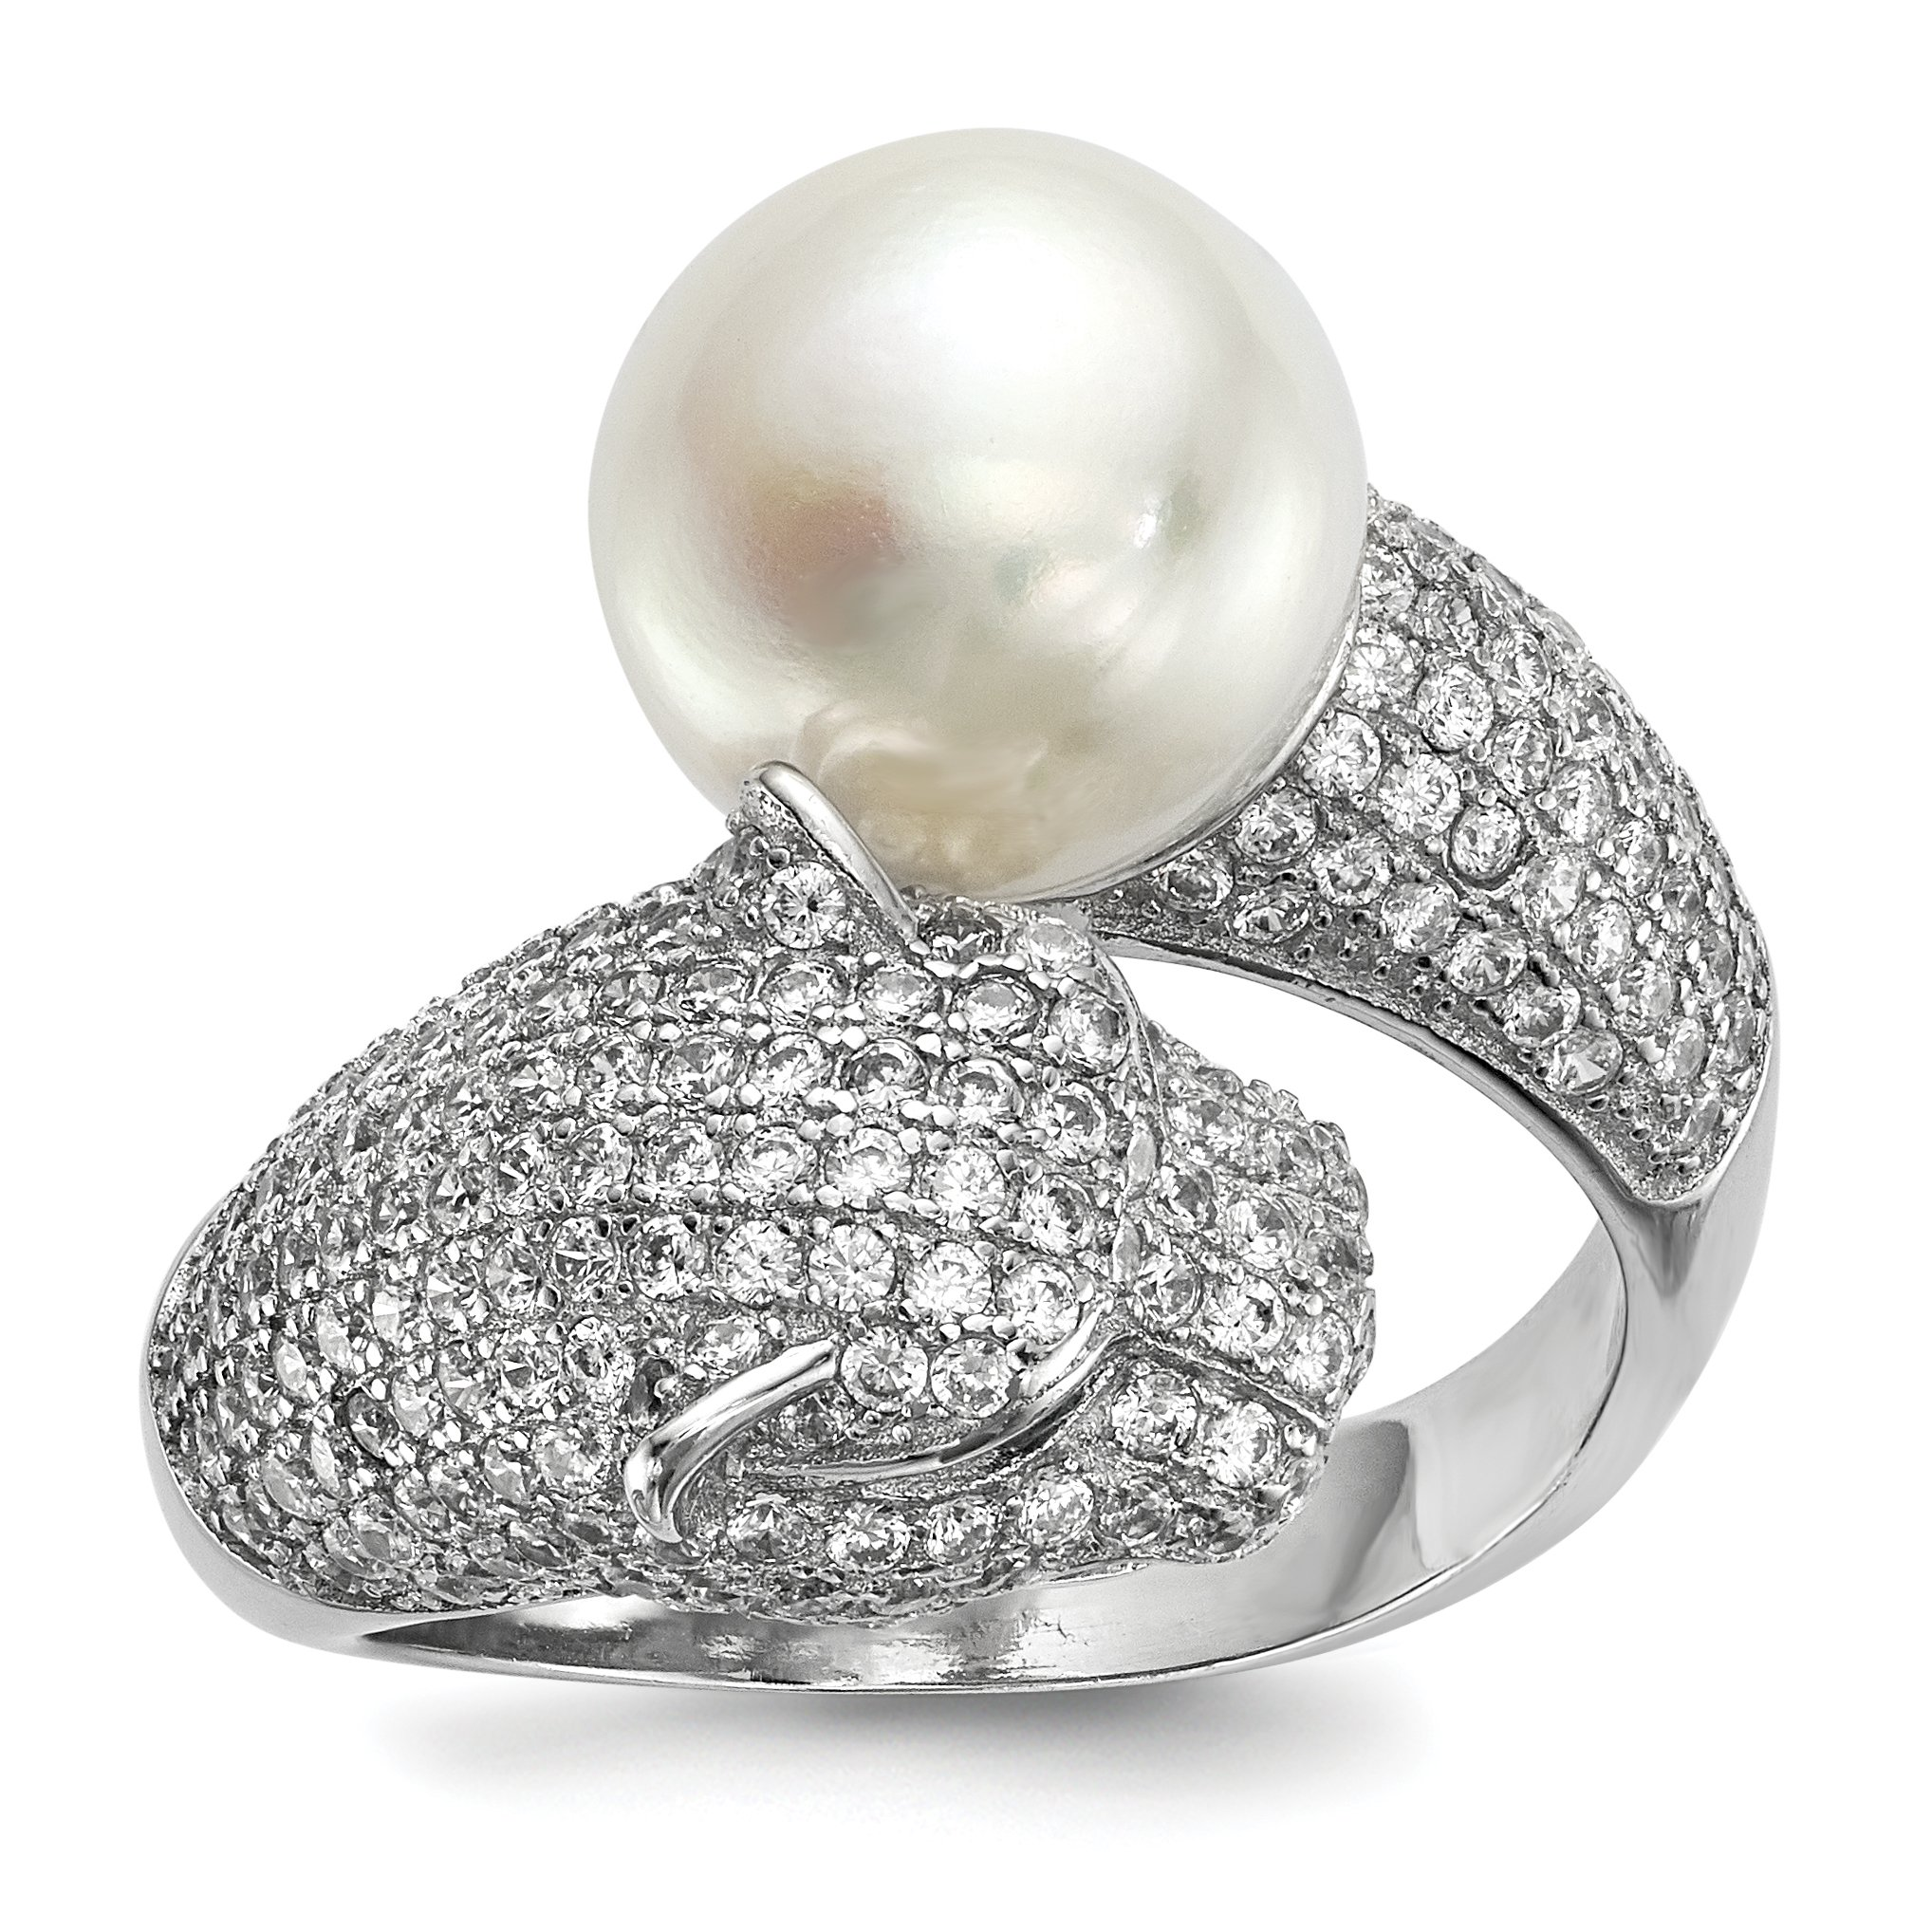 ICE CARATS 925 Sterling Silver 11mm White Freshwater Cultured Pearl Cubic Zirconia Cz Panther Band Ring Size 8.00 Fine Jewelry Gift Set For Women Heart